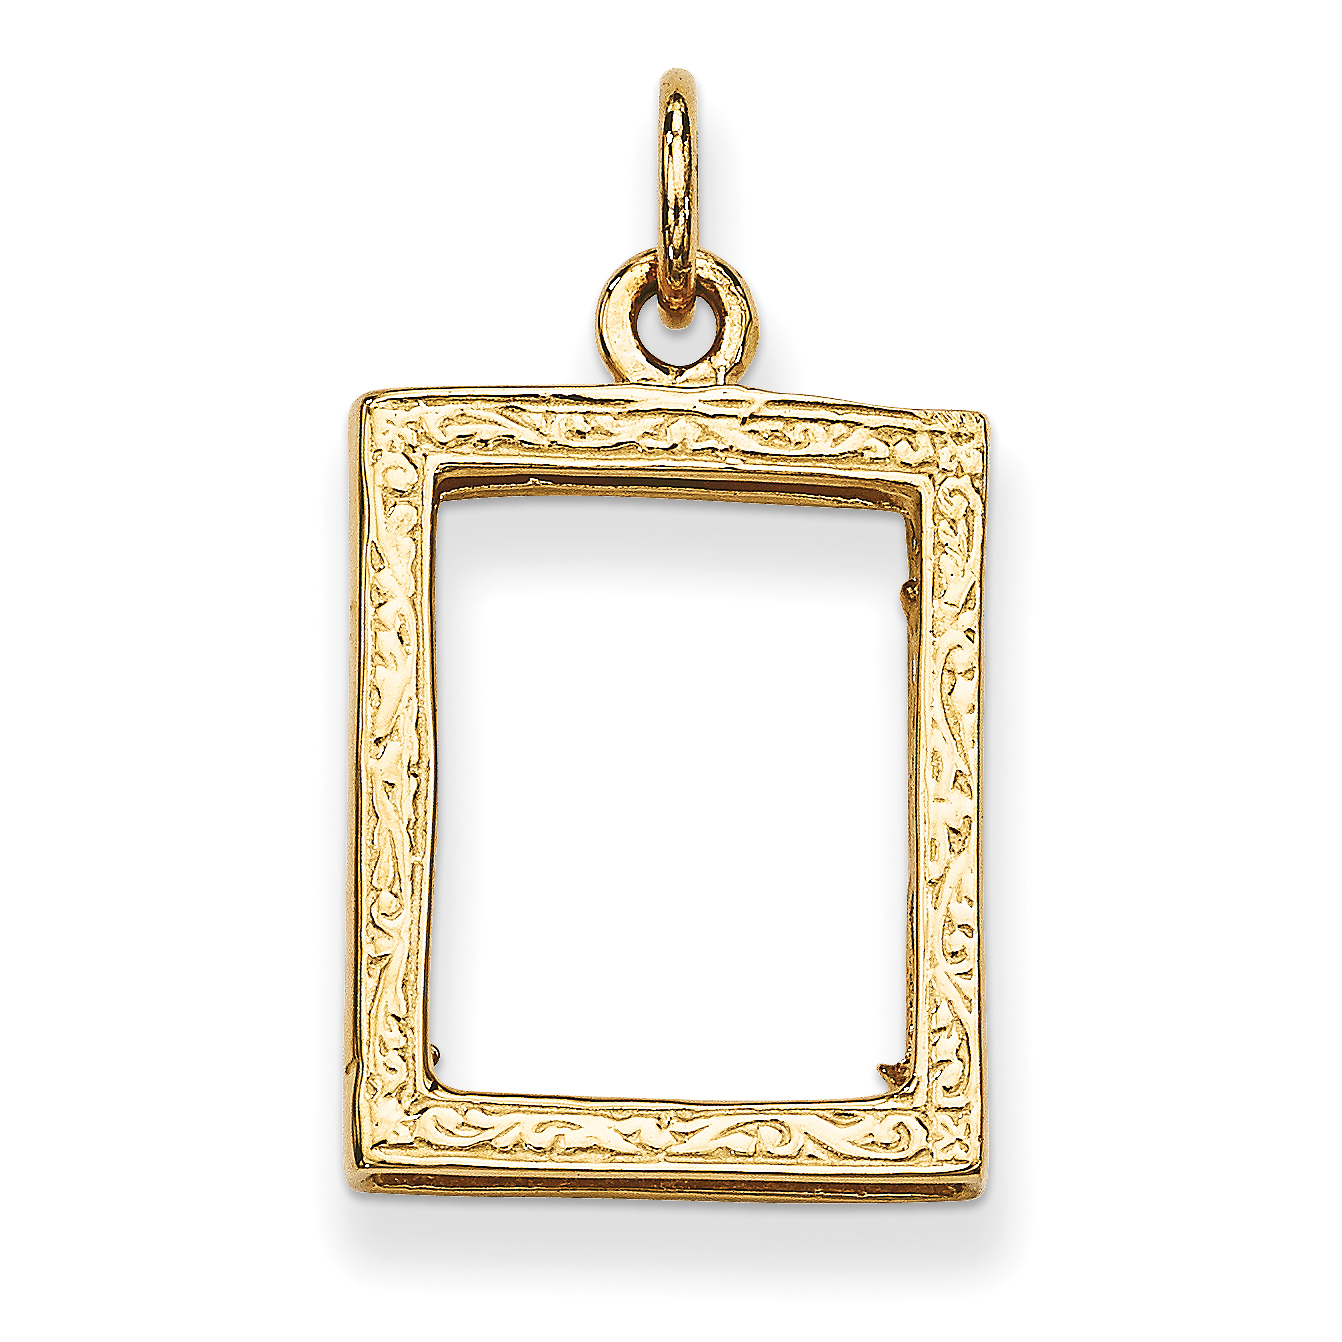 14k Yellow Gold Small Picture Frame Pendant Charm Necklace Locket Shaped Photo Fine Jewelry Gifts For Women For Her - image 2 of 2